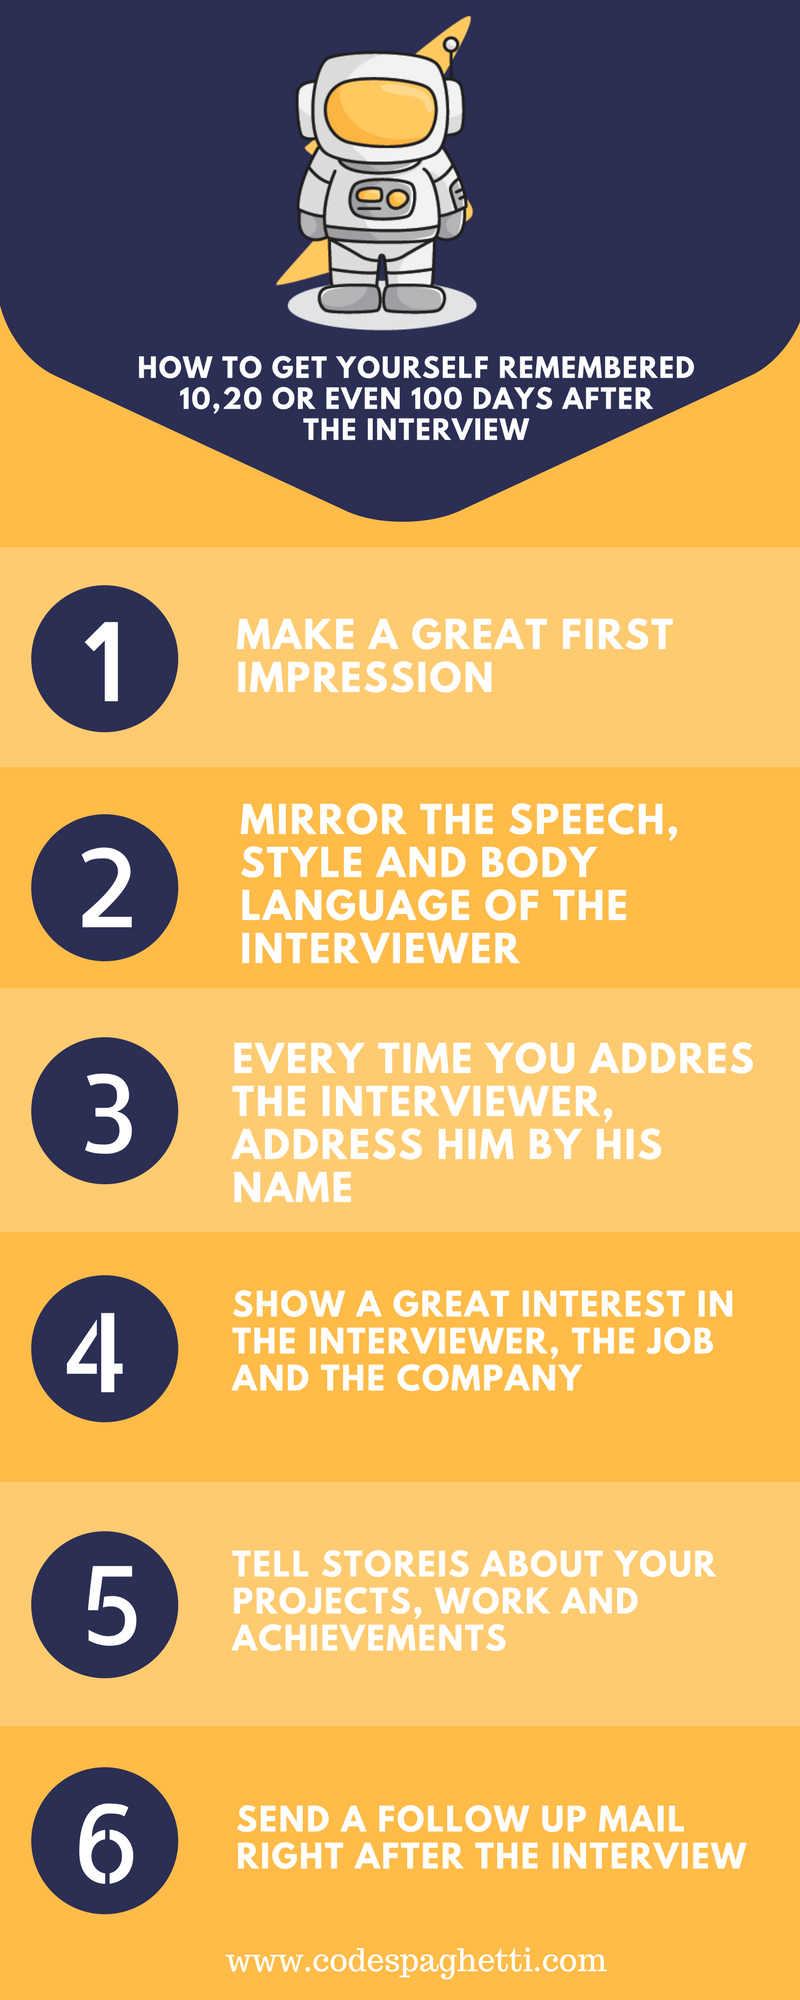 How to get remembered in interviews infographic